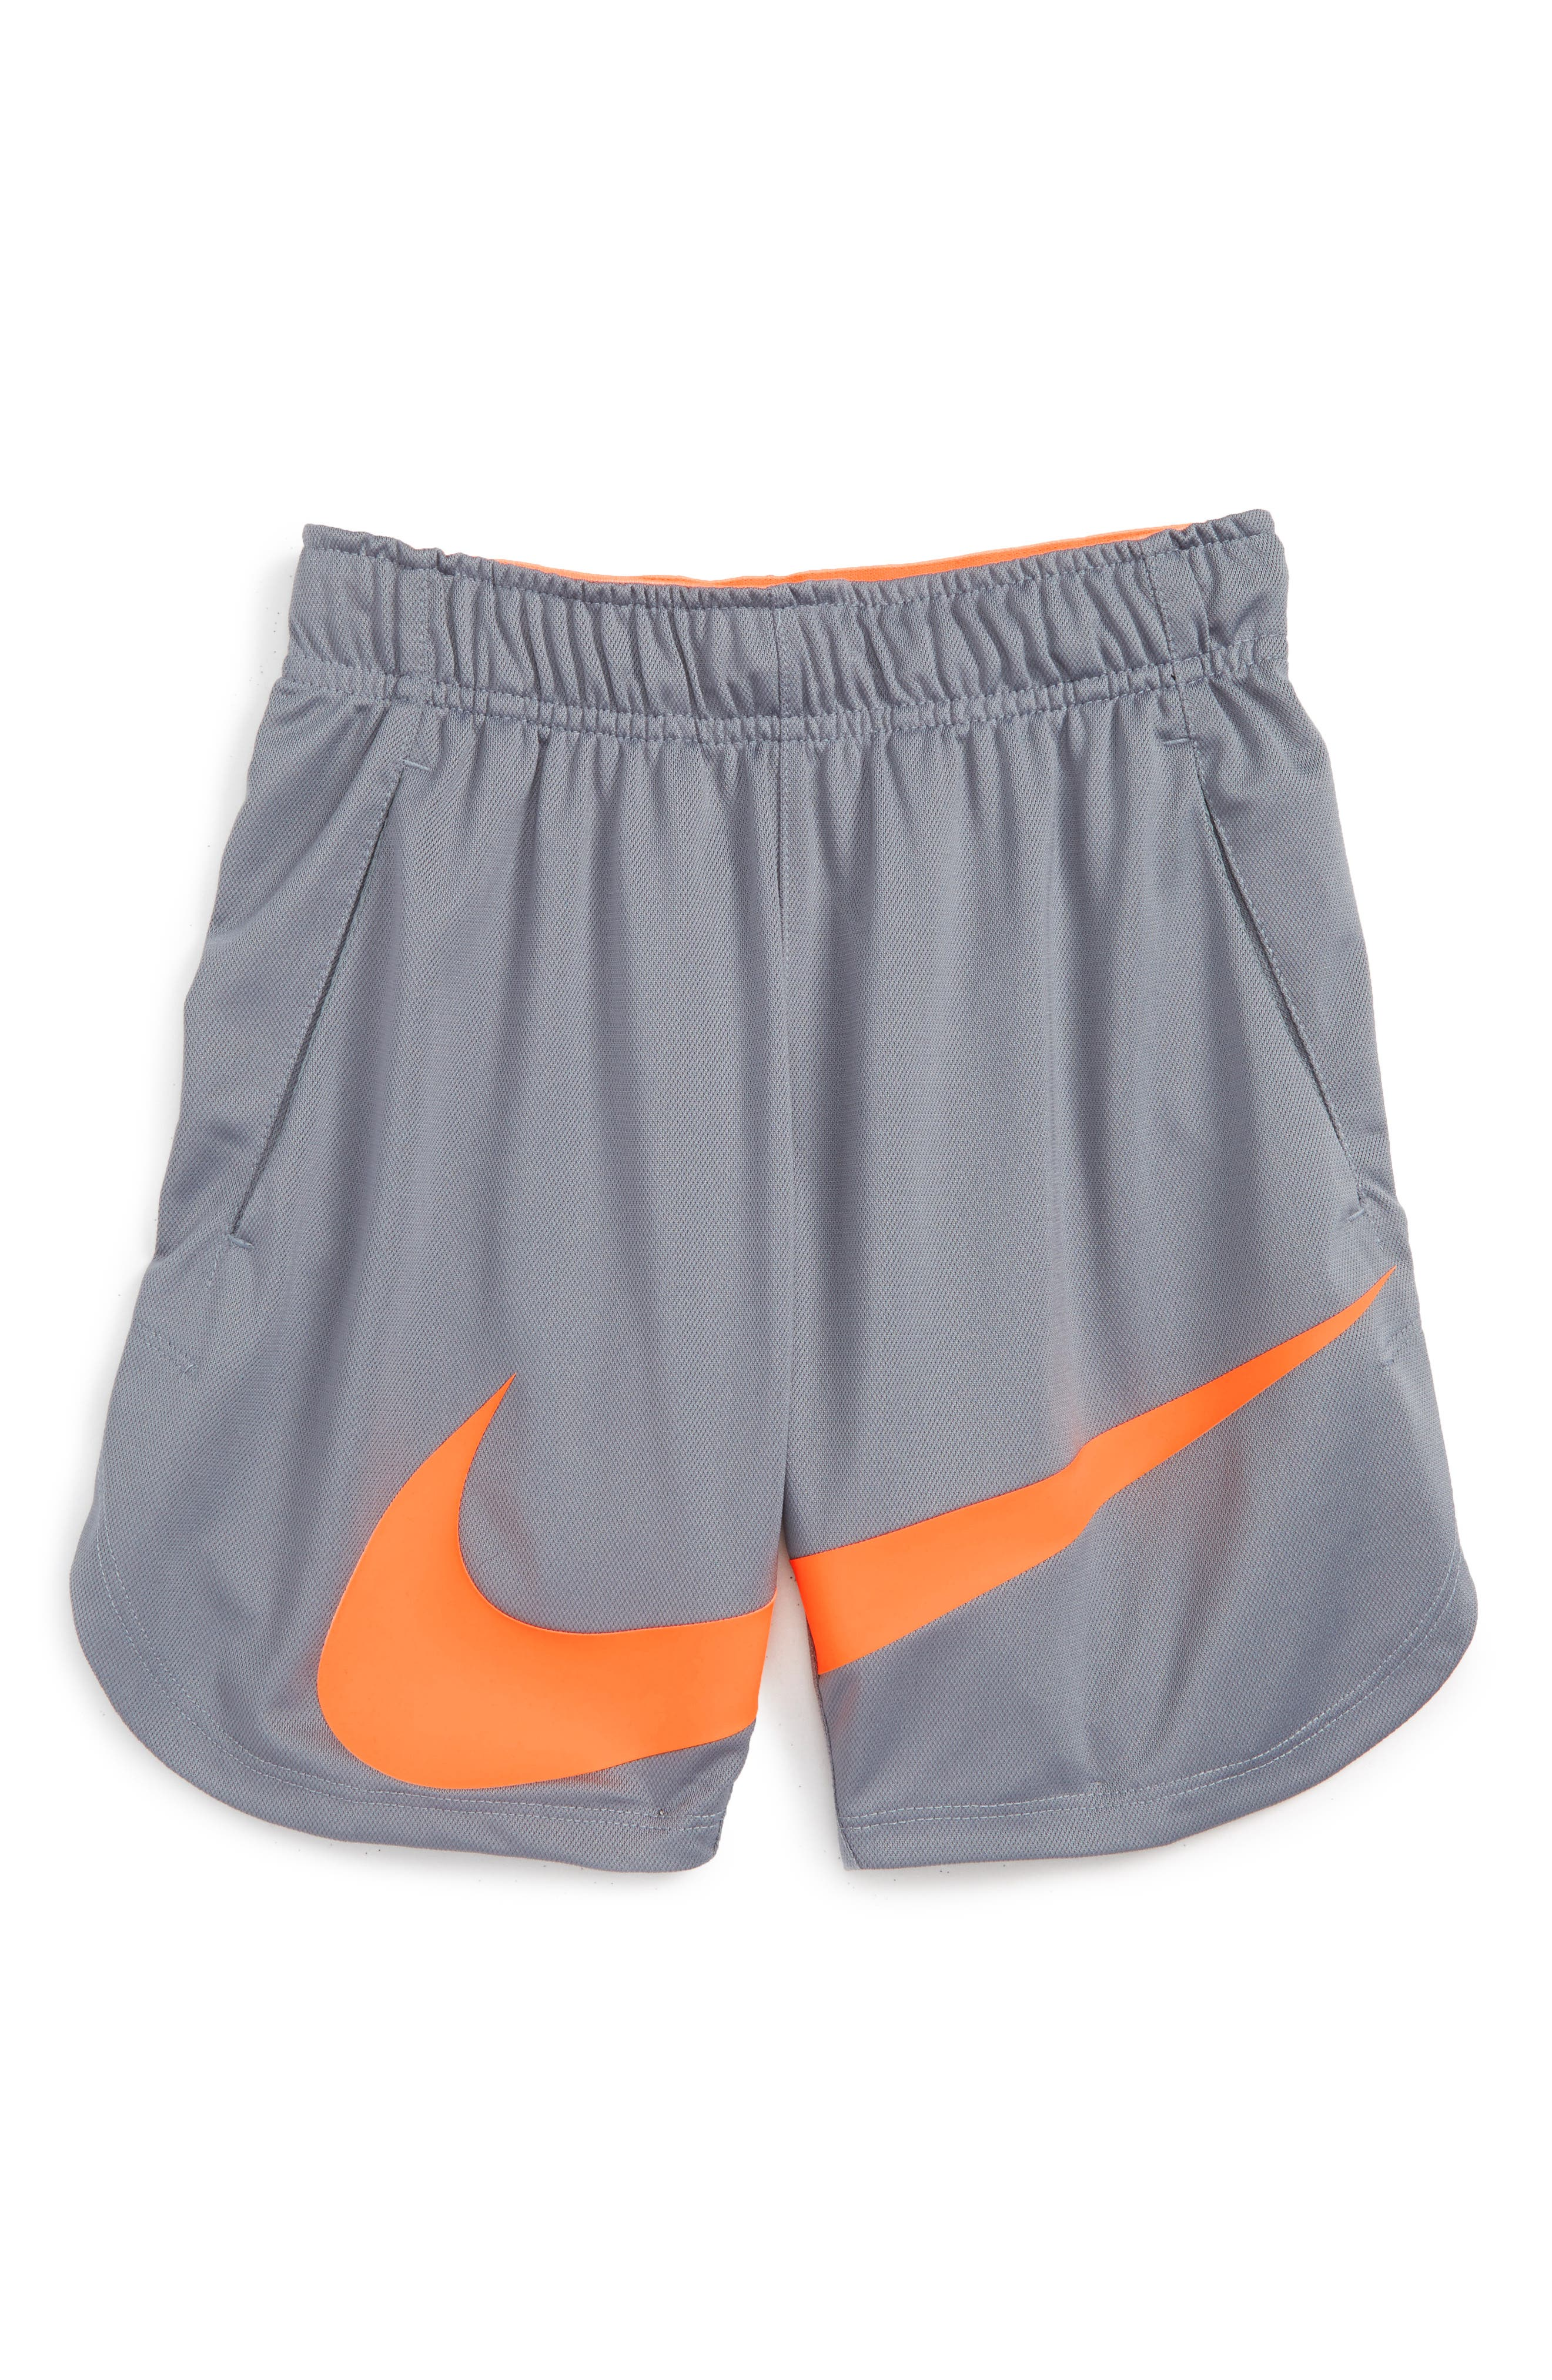 Nike Vent GFX Dri-FIT Shorts (Toddler Boys)